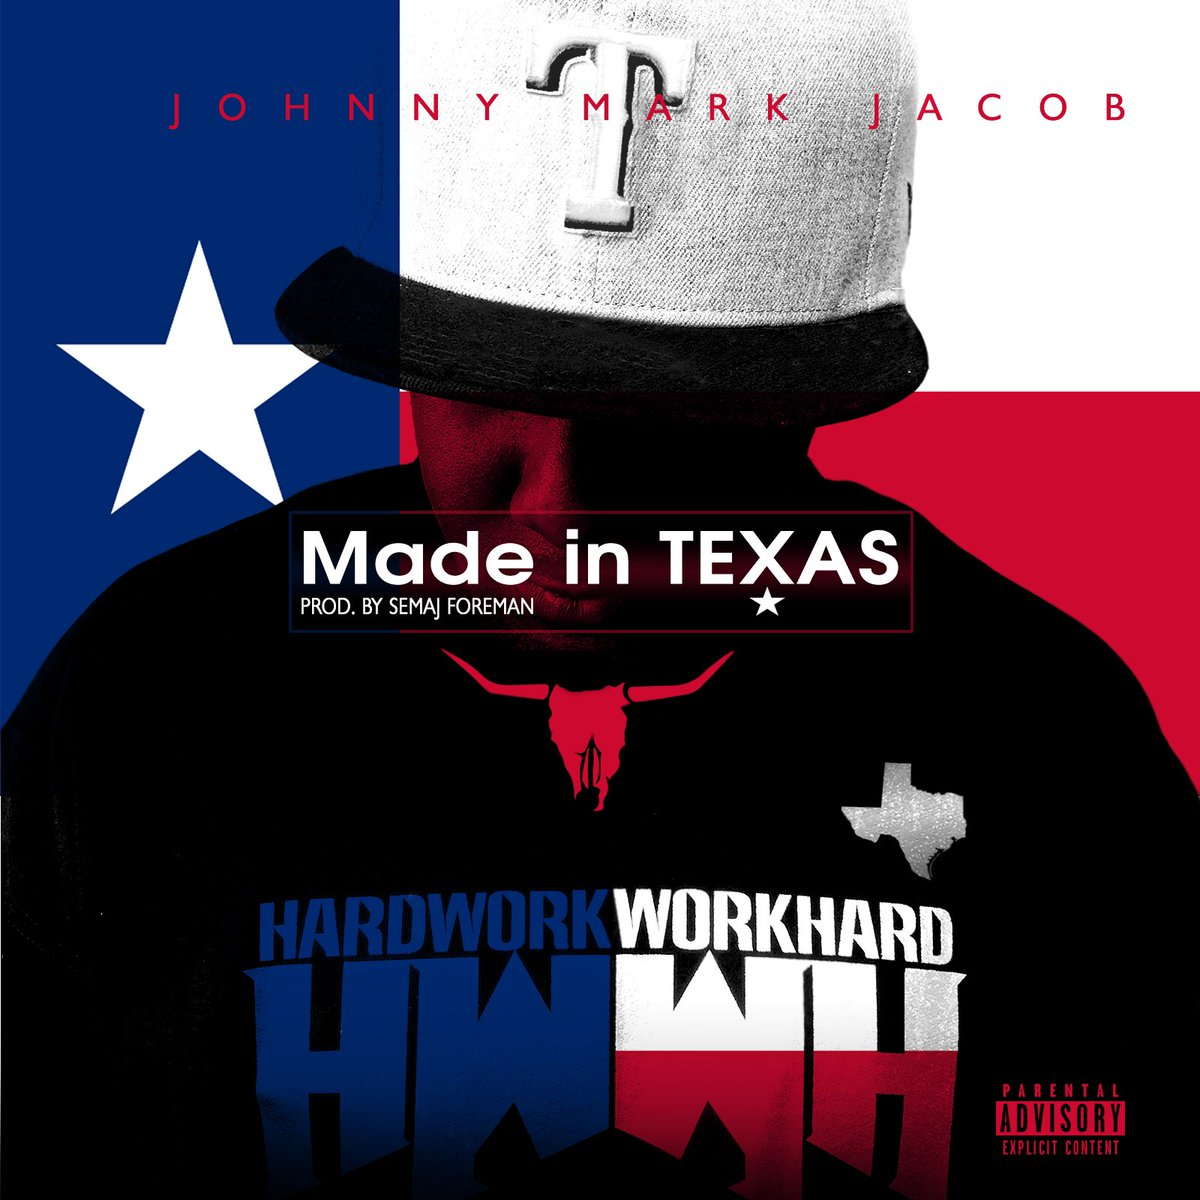 """New Album """"Made In Texas"""" release July 14 produced by @SemajForeman features @FitzTaylor @wiccedmusic @themadeway https://t.co/PzgRCVVoBN"""